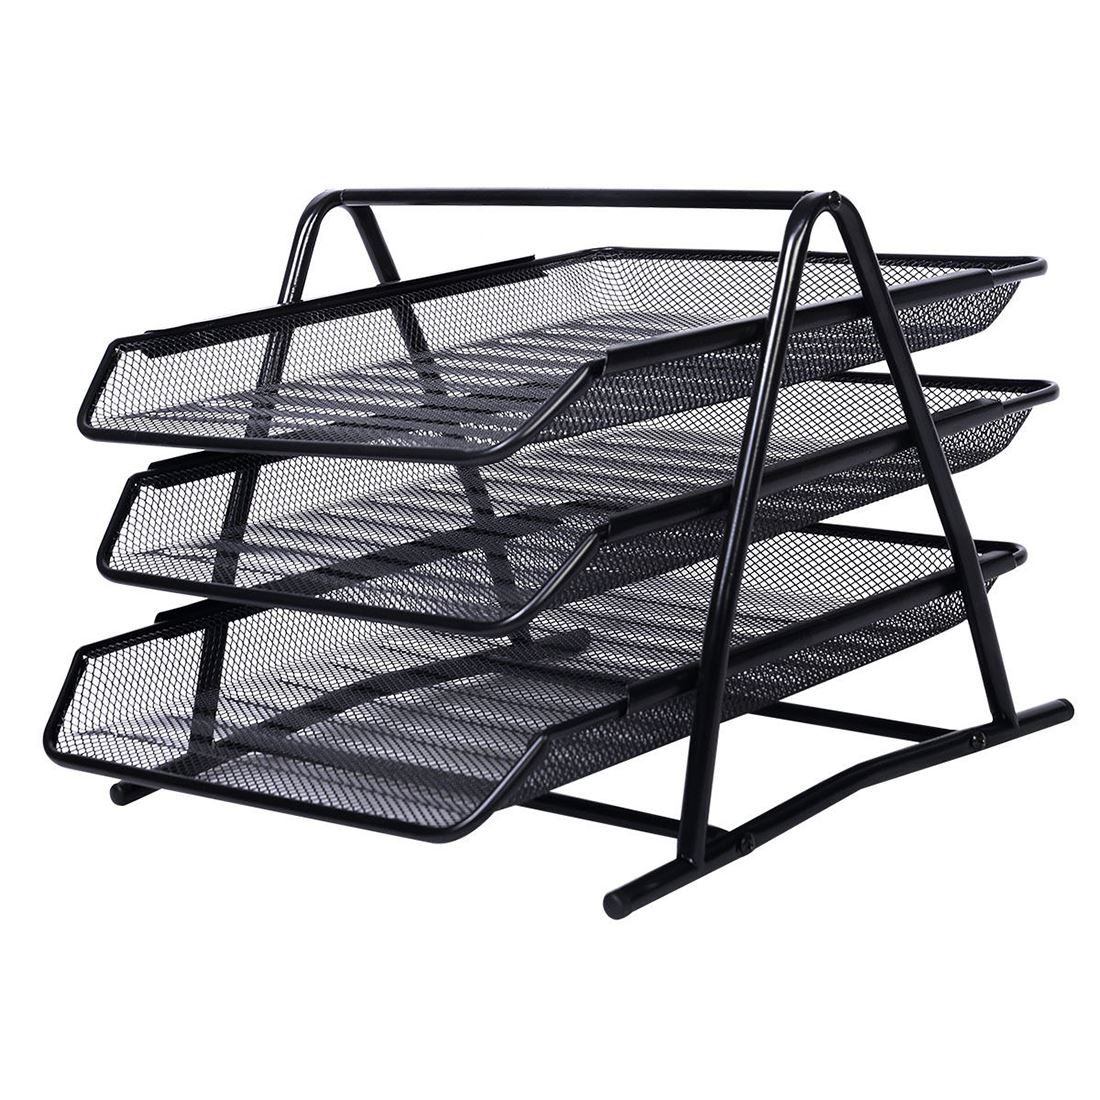 A4 Wire Mesh Filing Tray Black Silver 3 4 Tier Document